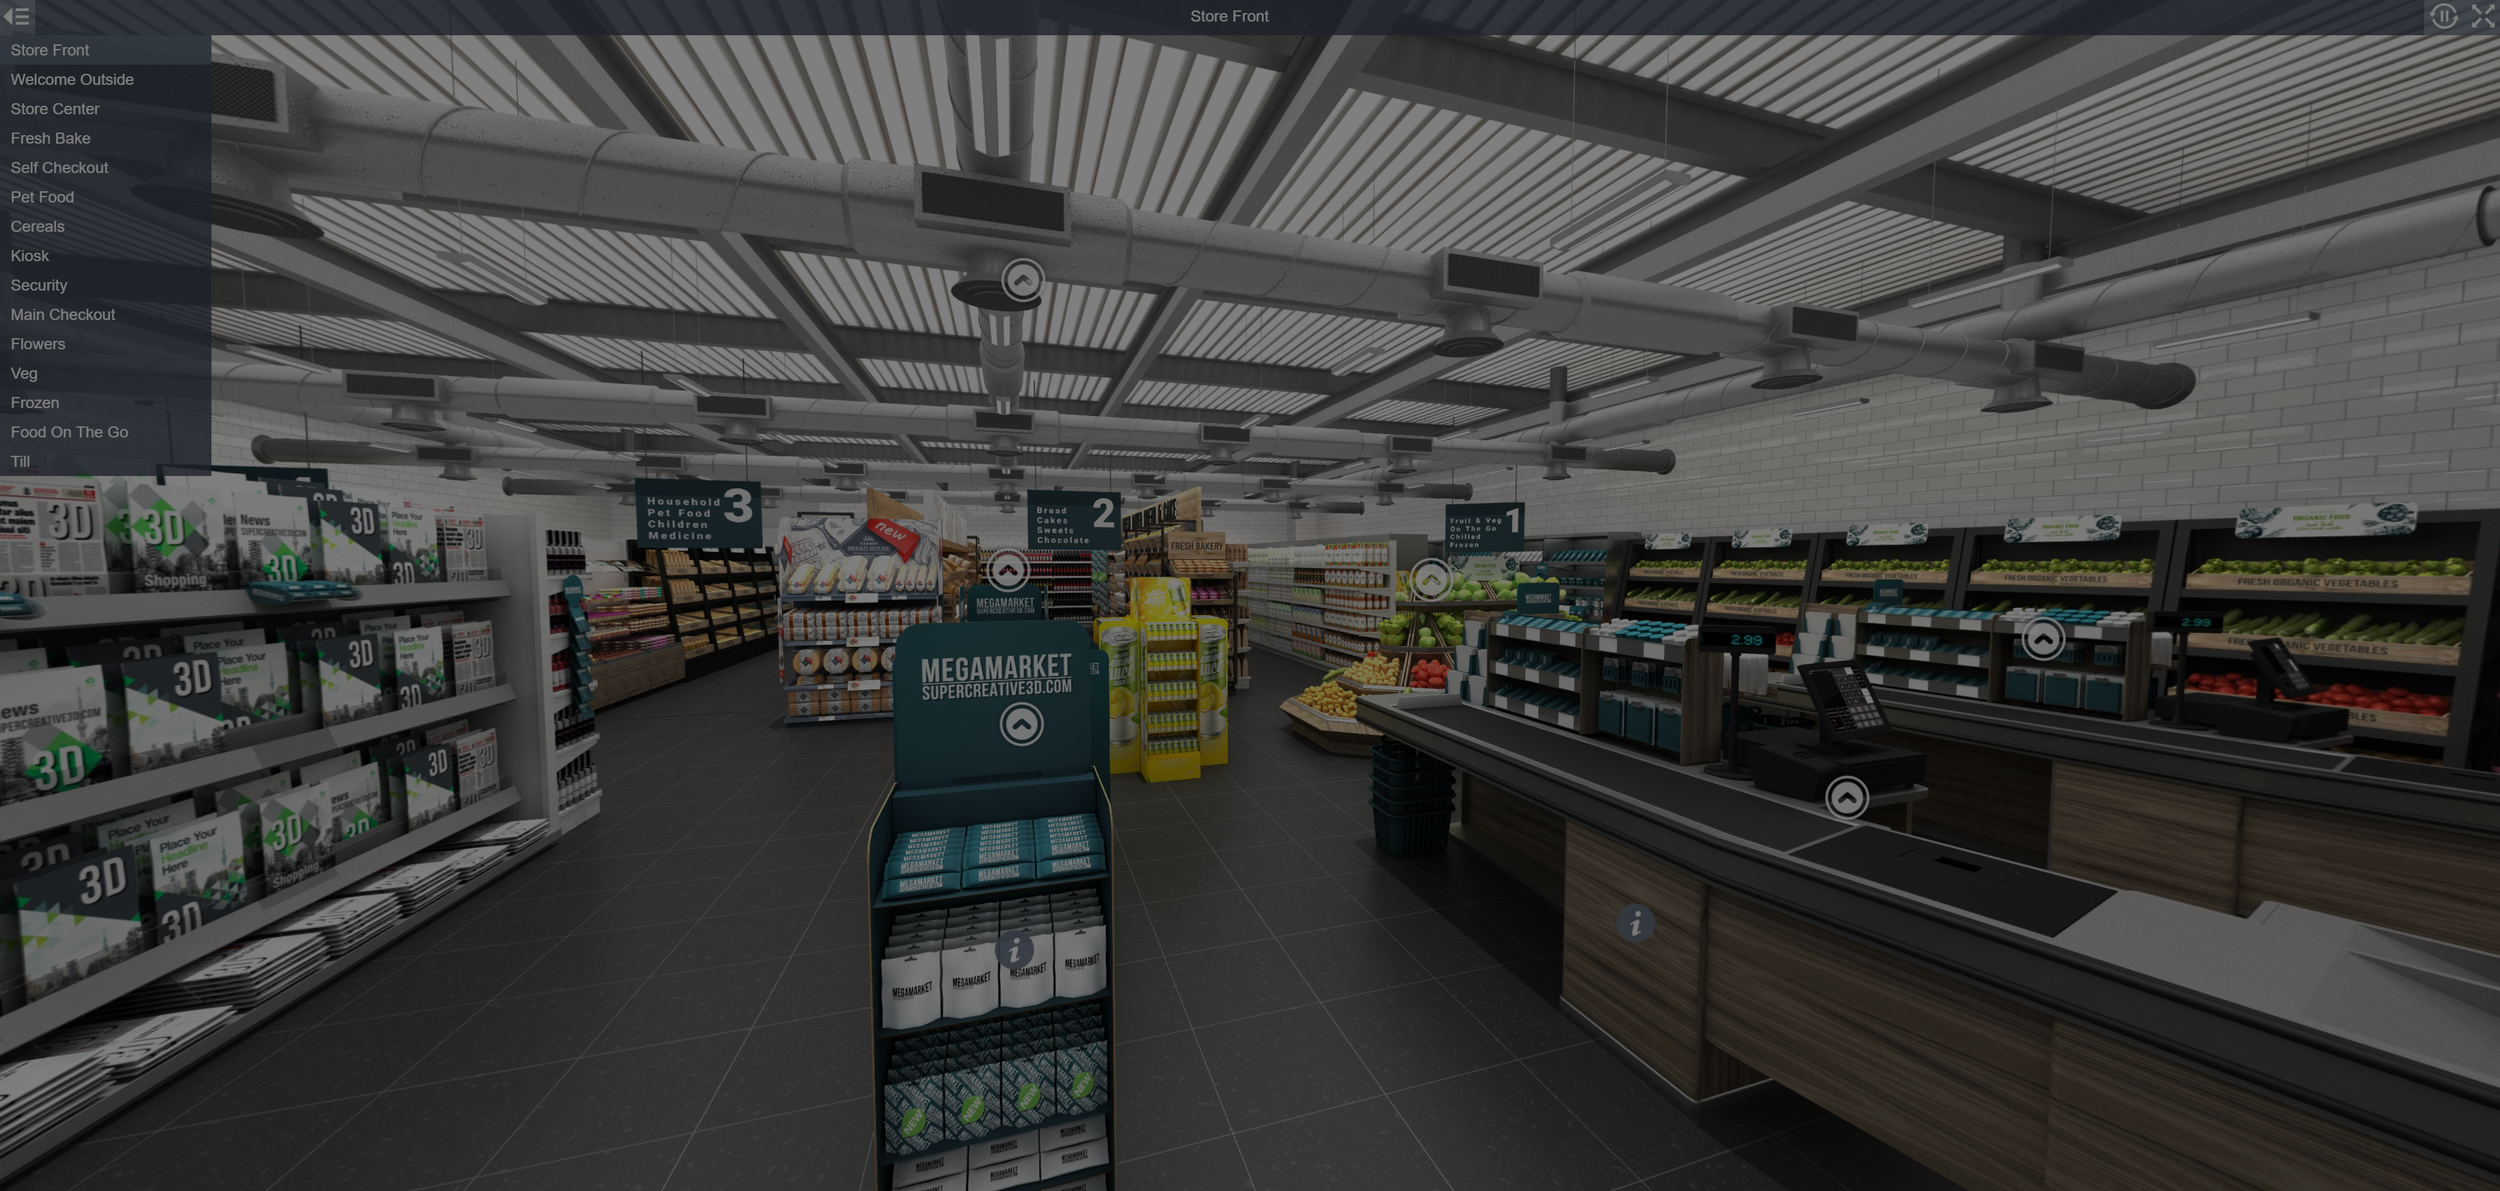 Tour around a 360 interactive supermarket store. - To guide yourself around the 3D supermarket food store click here, look around the supermarket aisles.